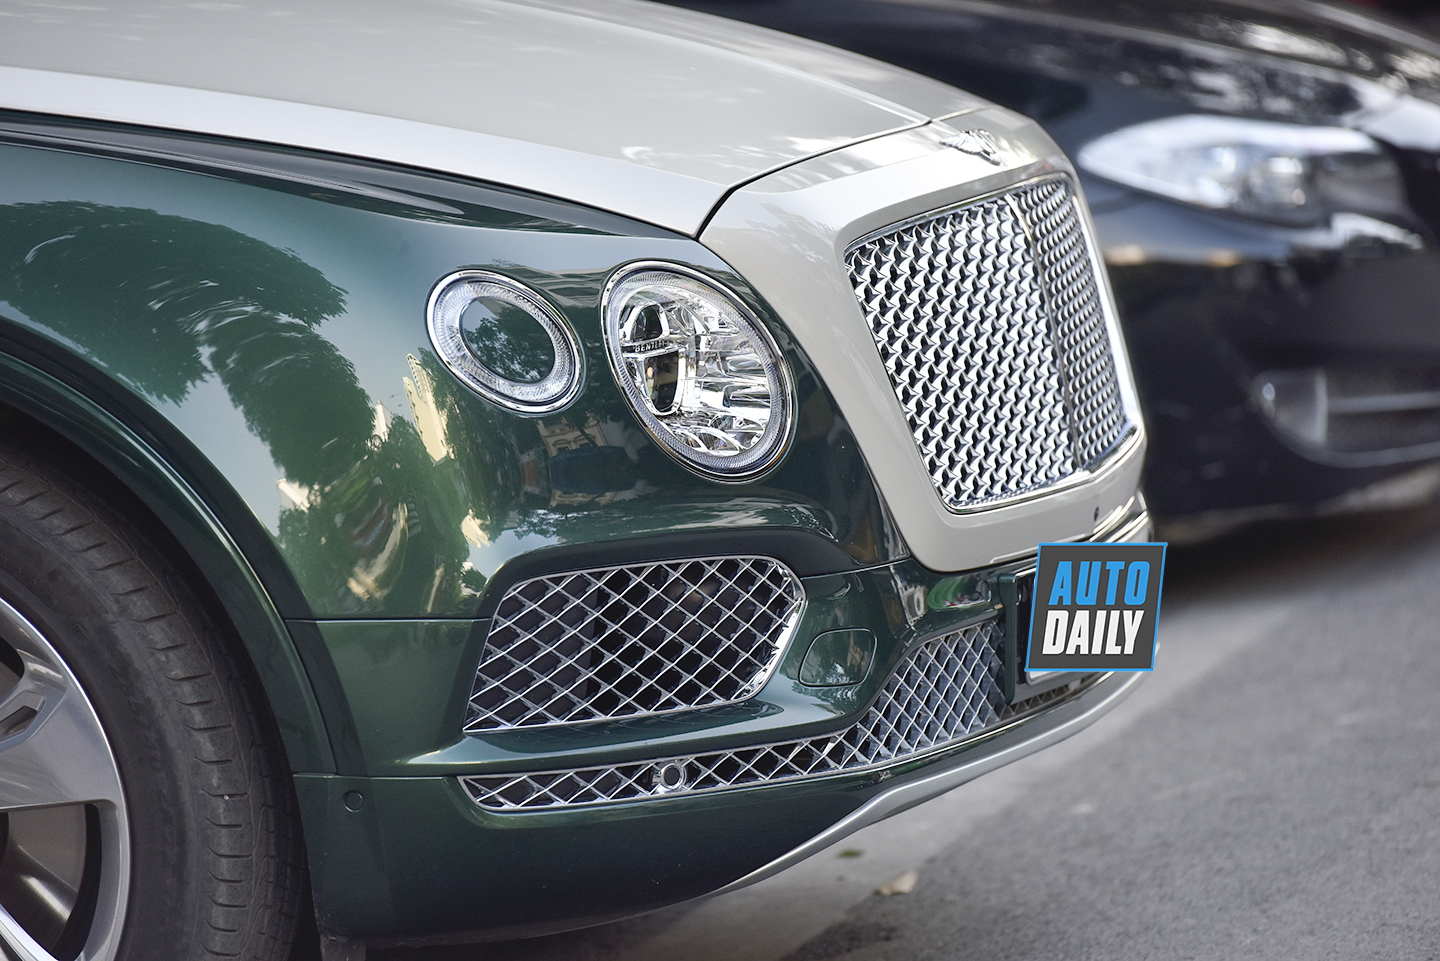 bentley-bentayga-autodaily-dsc8250-copy.jpg